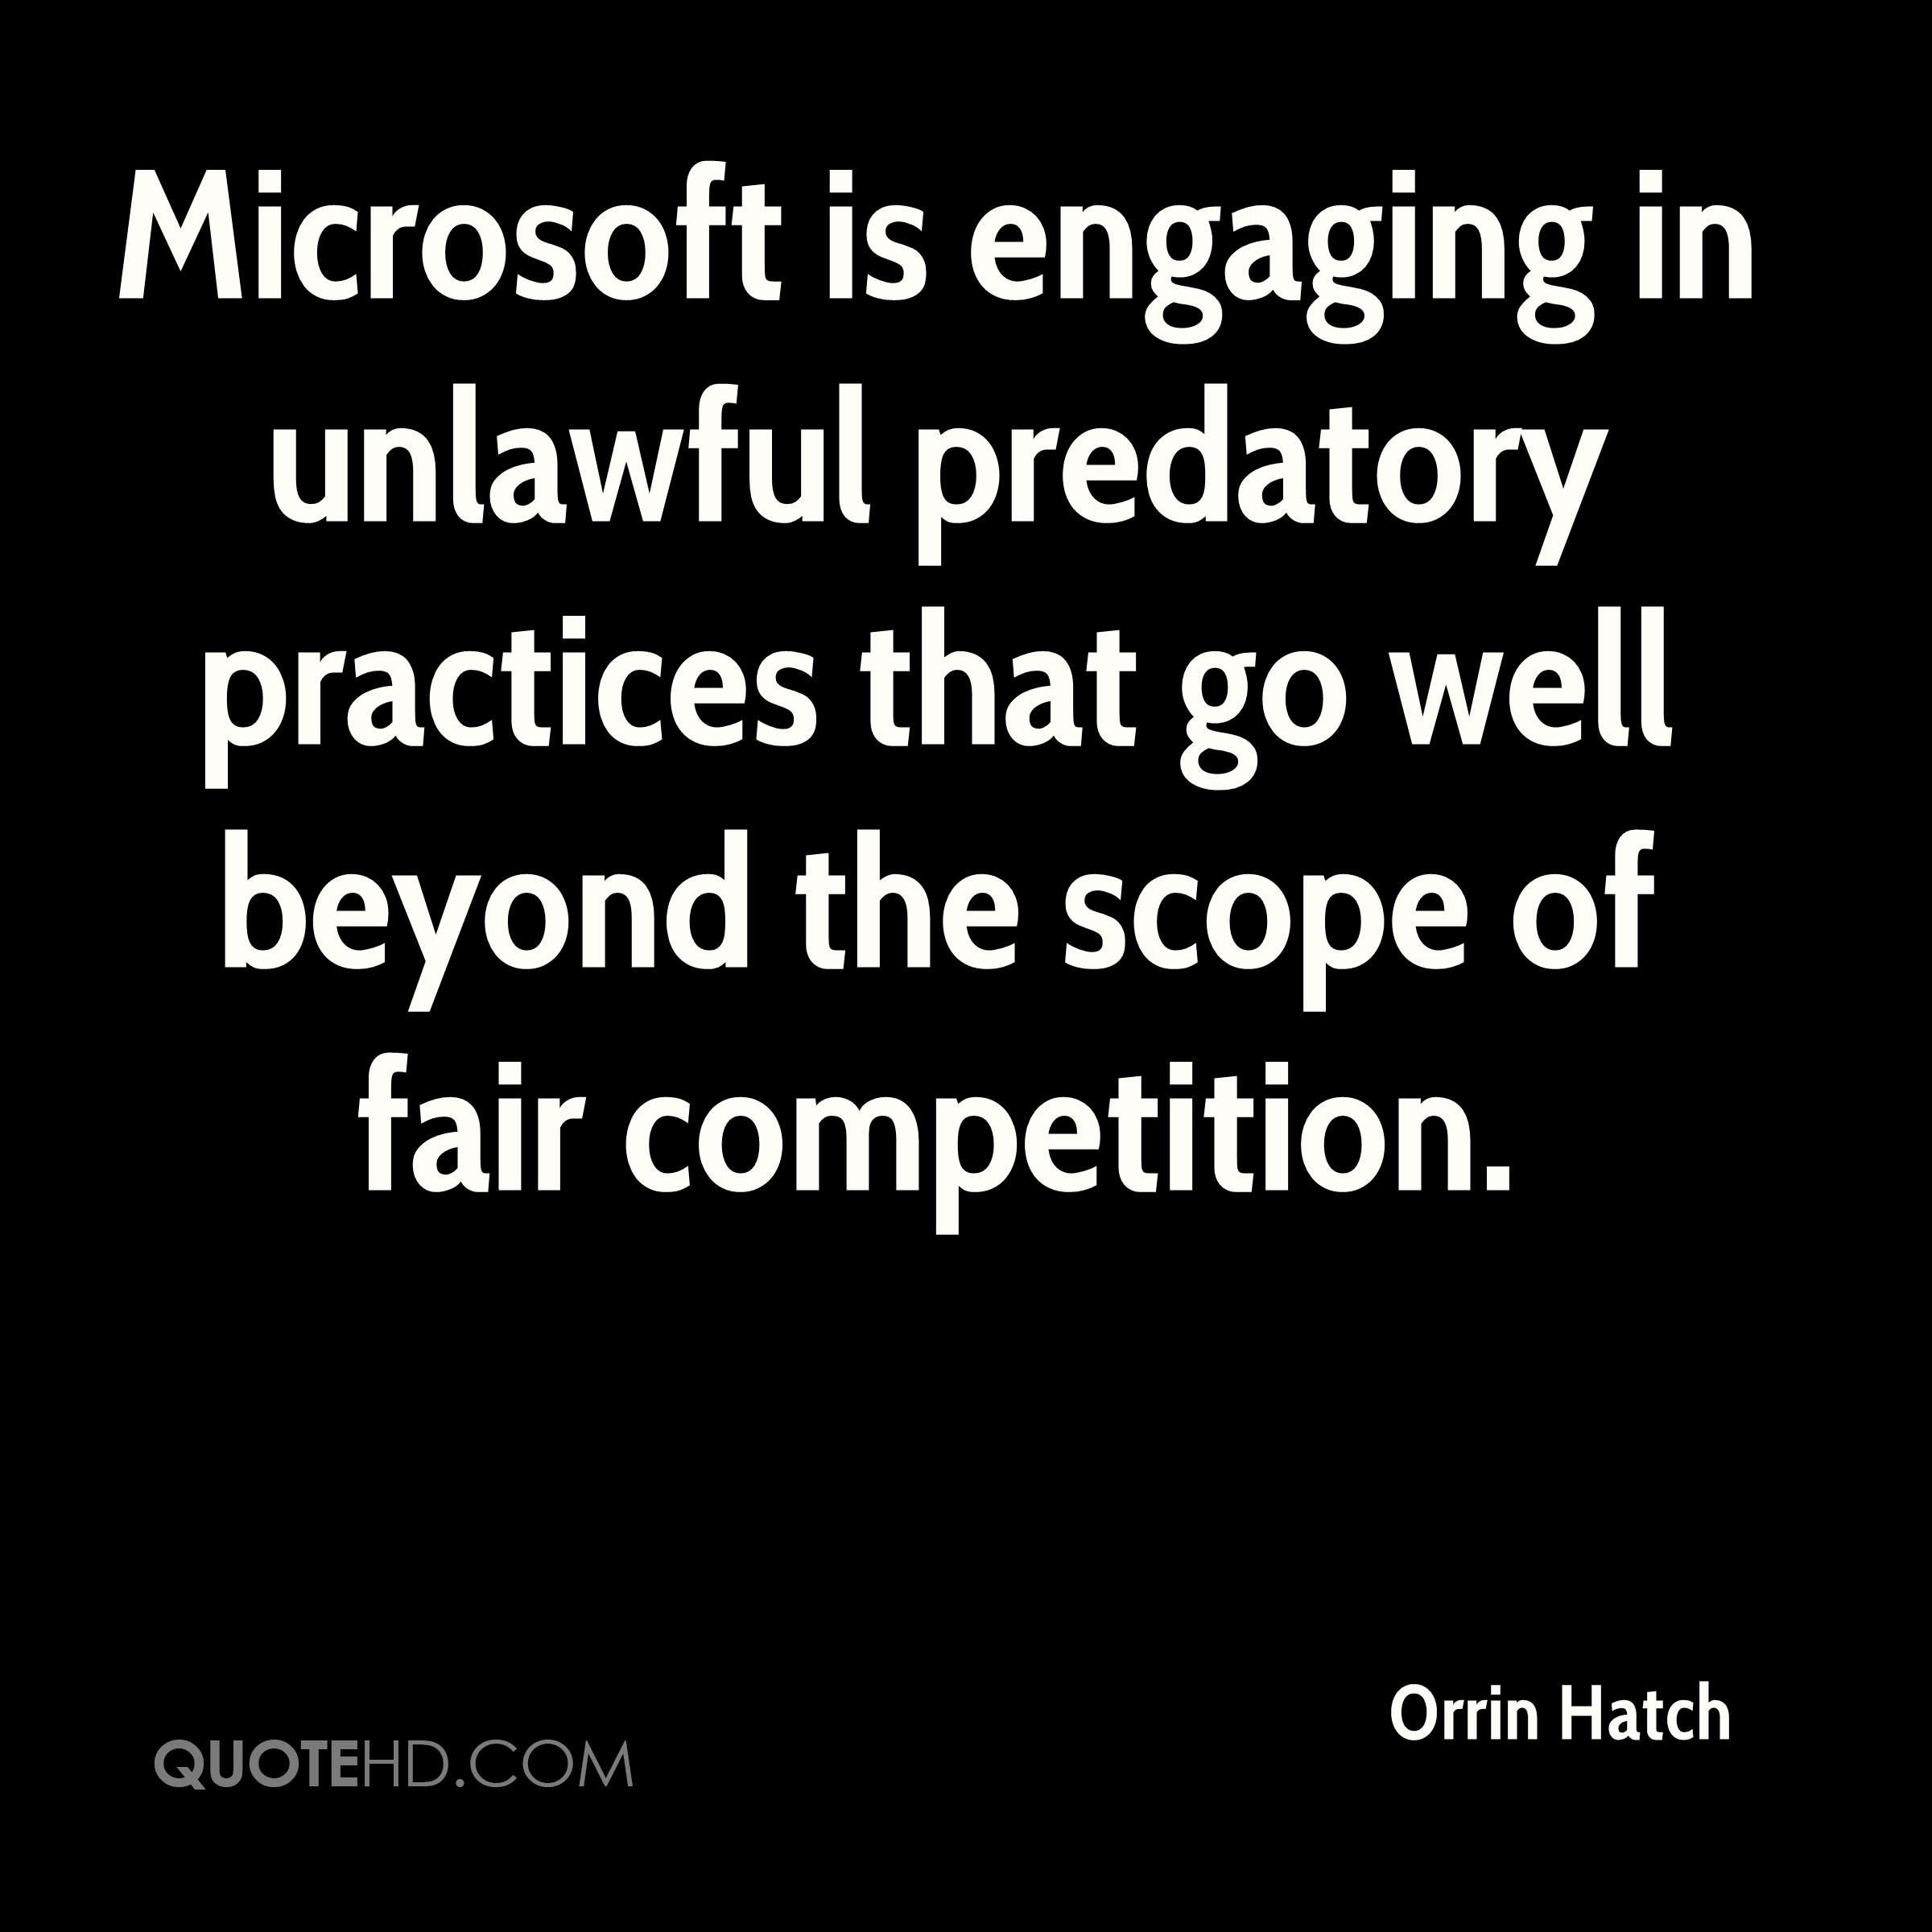 Microsoft is engaging in unlawful predatory practices that go well beyond the scope of fair competition.